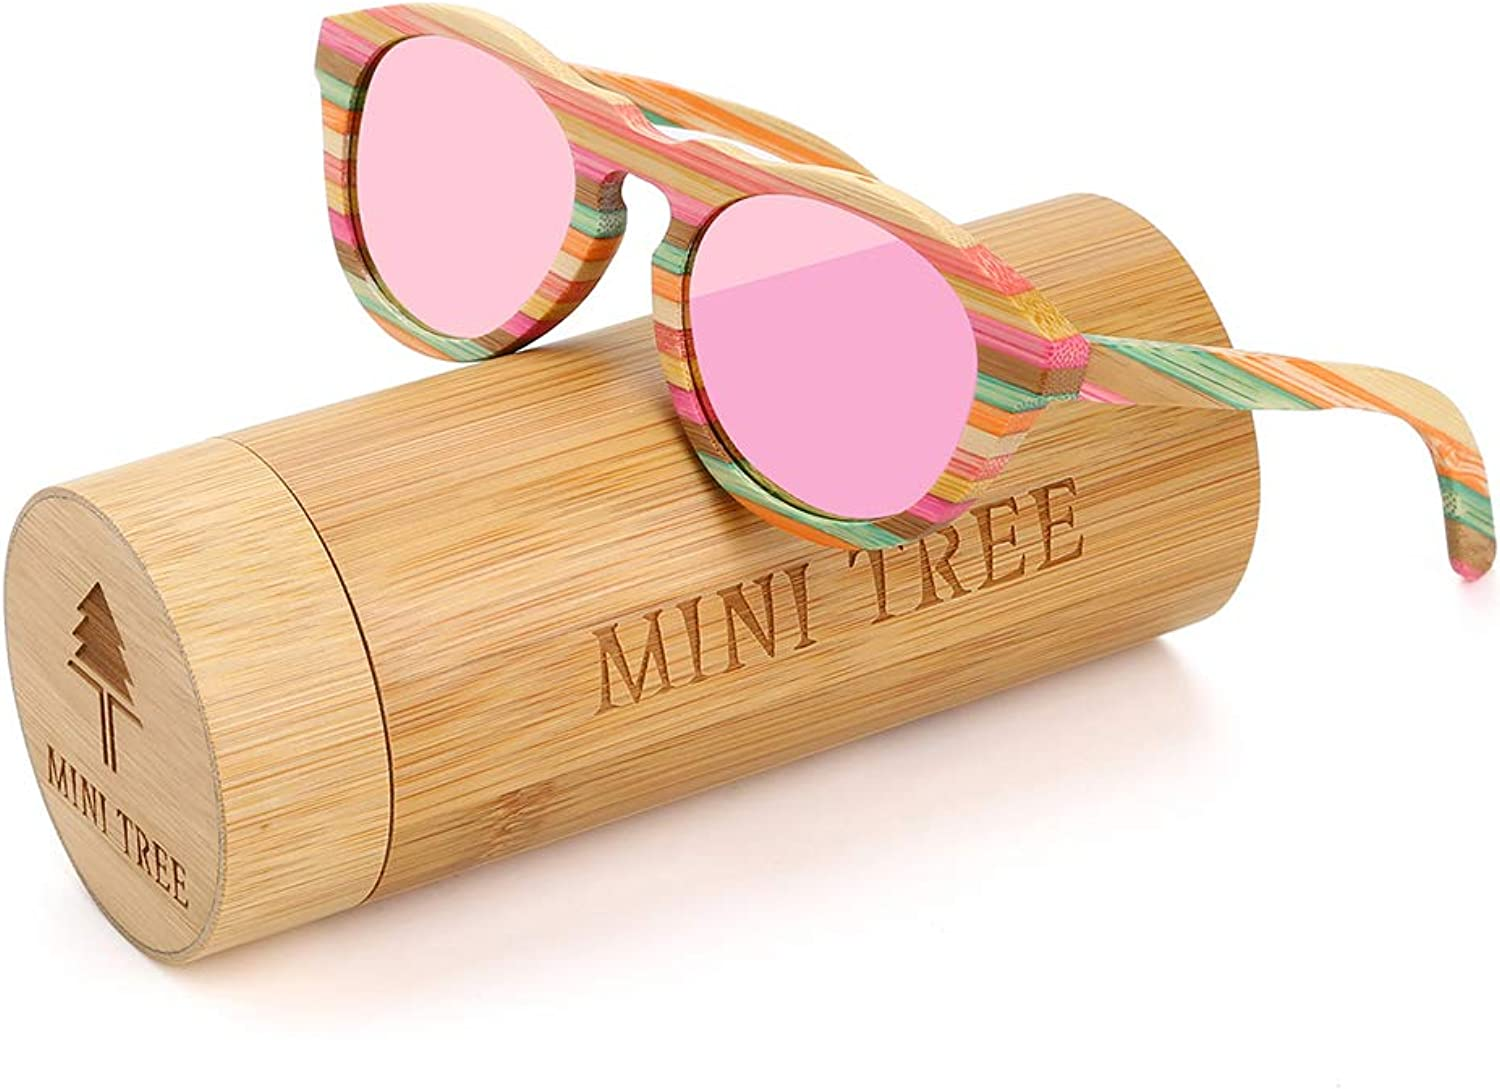 Bamboo Polarized Sunglasses Round Glasses for Women Mini Tree Sun Shades With Case